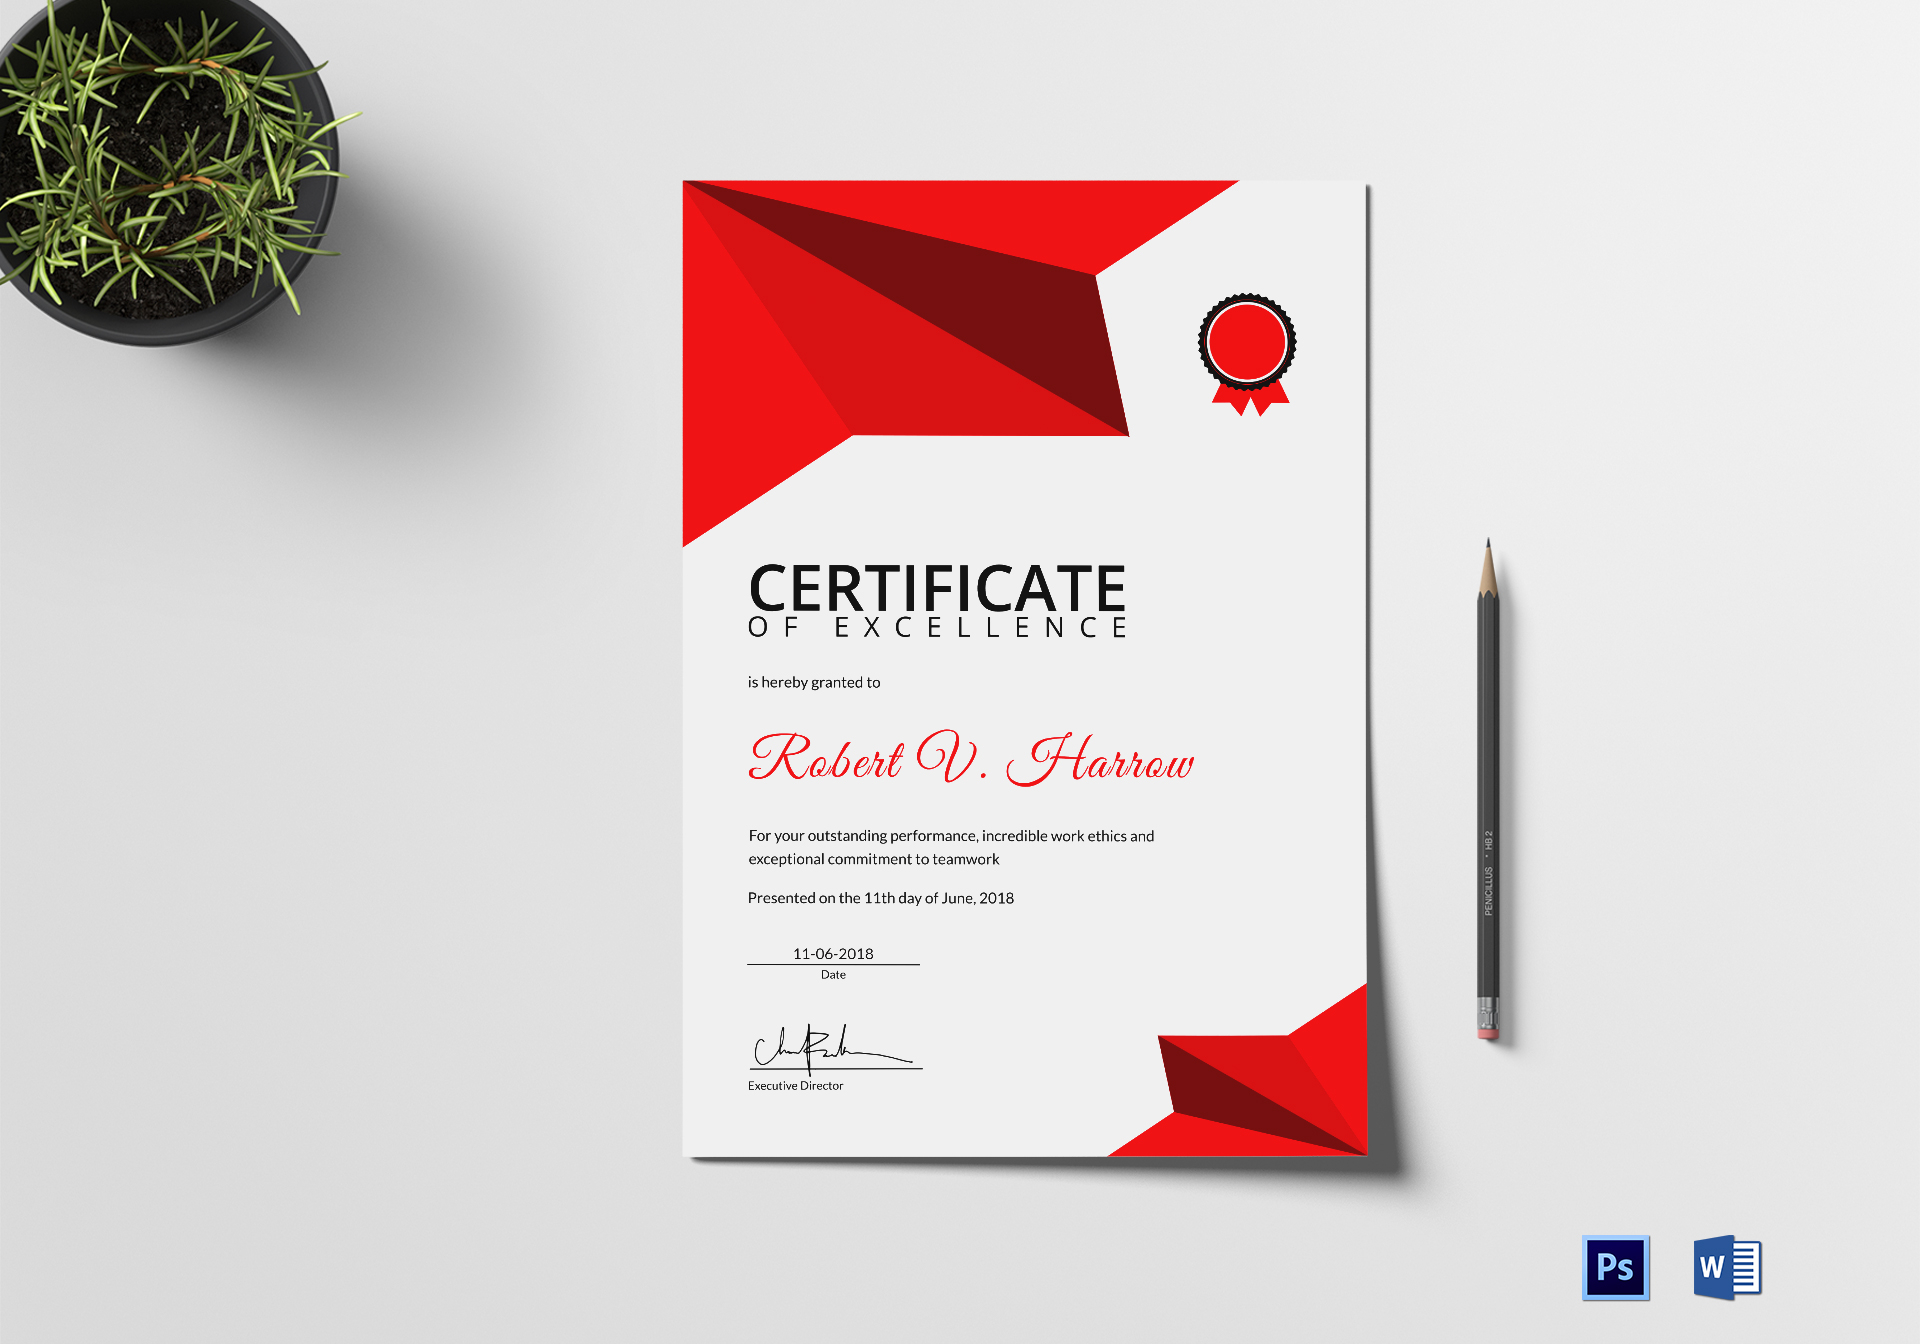 Certificate maker online free flyer how to writing an essay badminton certificate template certificate of coach excellance 2017 2 badminton certificate template xflitez Image collections